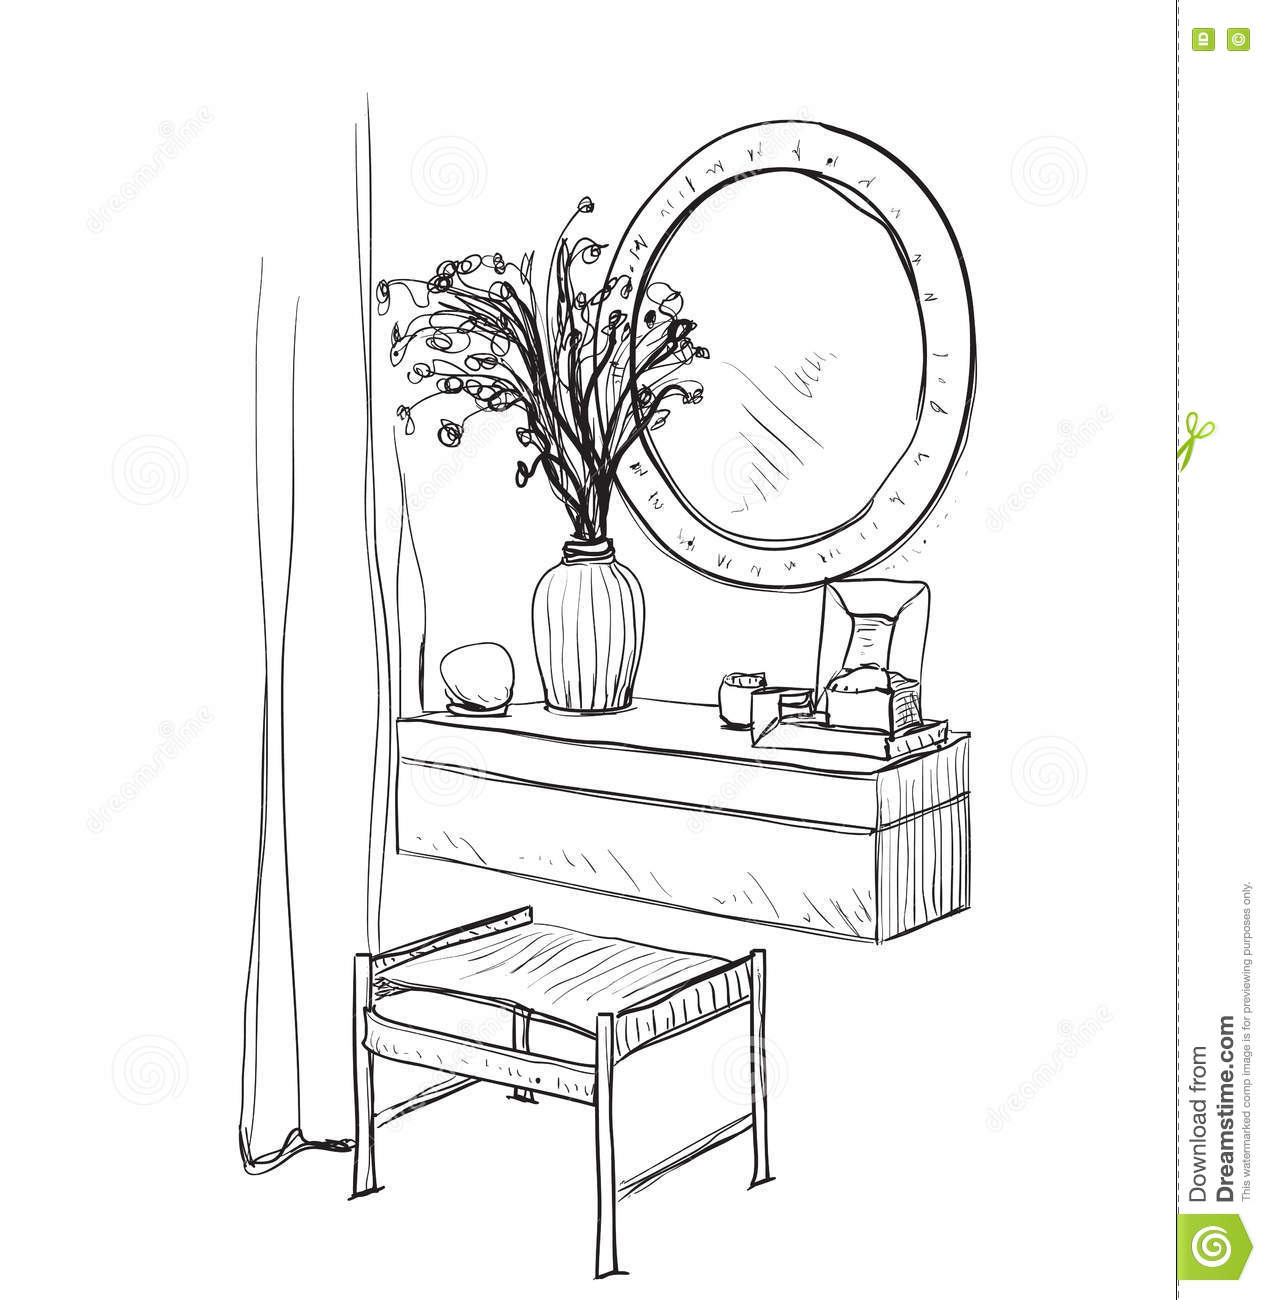 hand mirror sketch. Hand Drawn Chair, Table And Mirror. Mirror Sketch